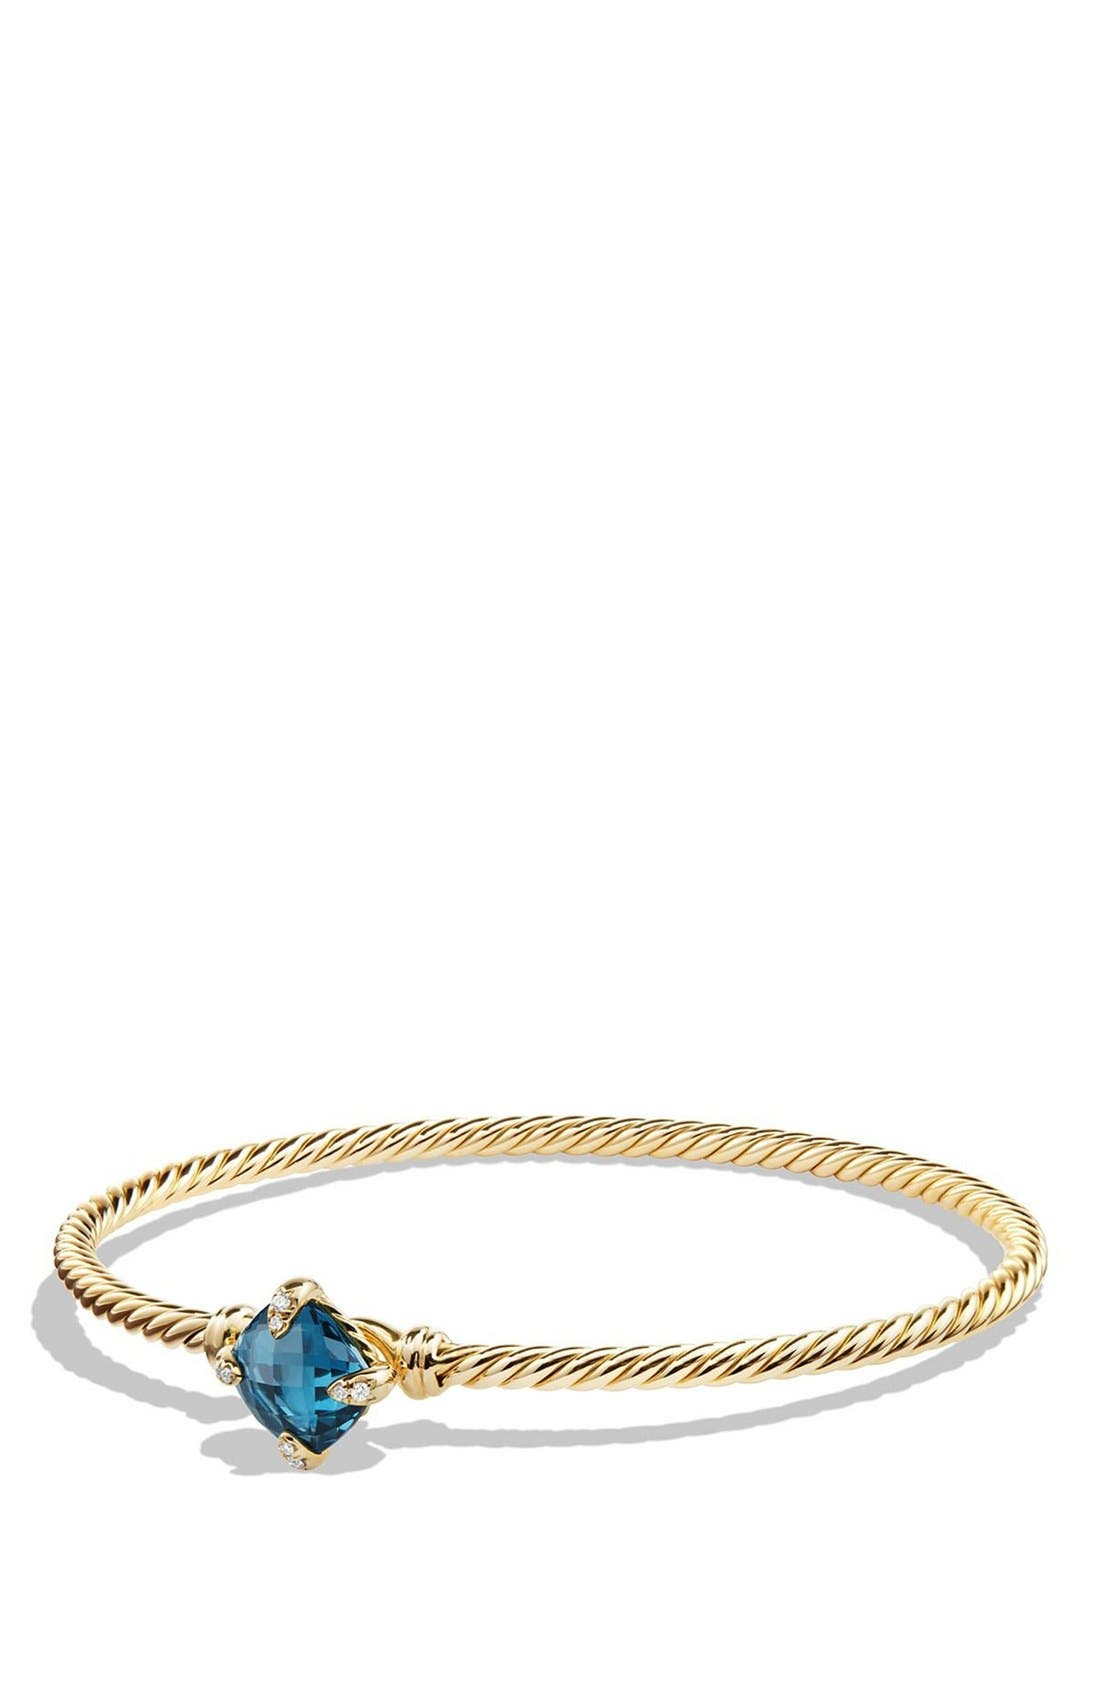 'Châtelaine' Bracelet in 18K Gold with Diamonds,                             Main thumbnail 1, color,                             HAMPTON BLUE TOPAZ